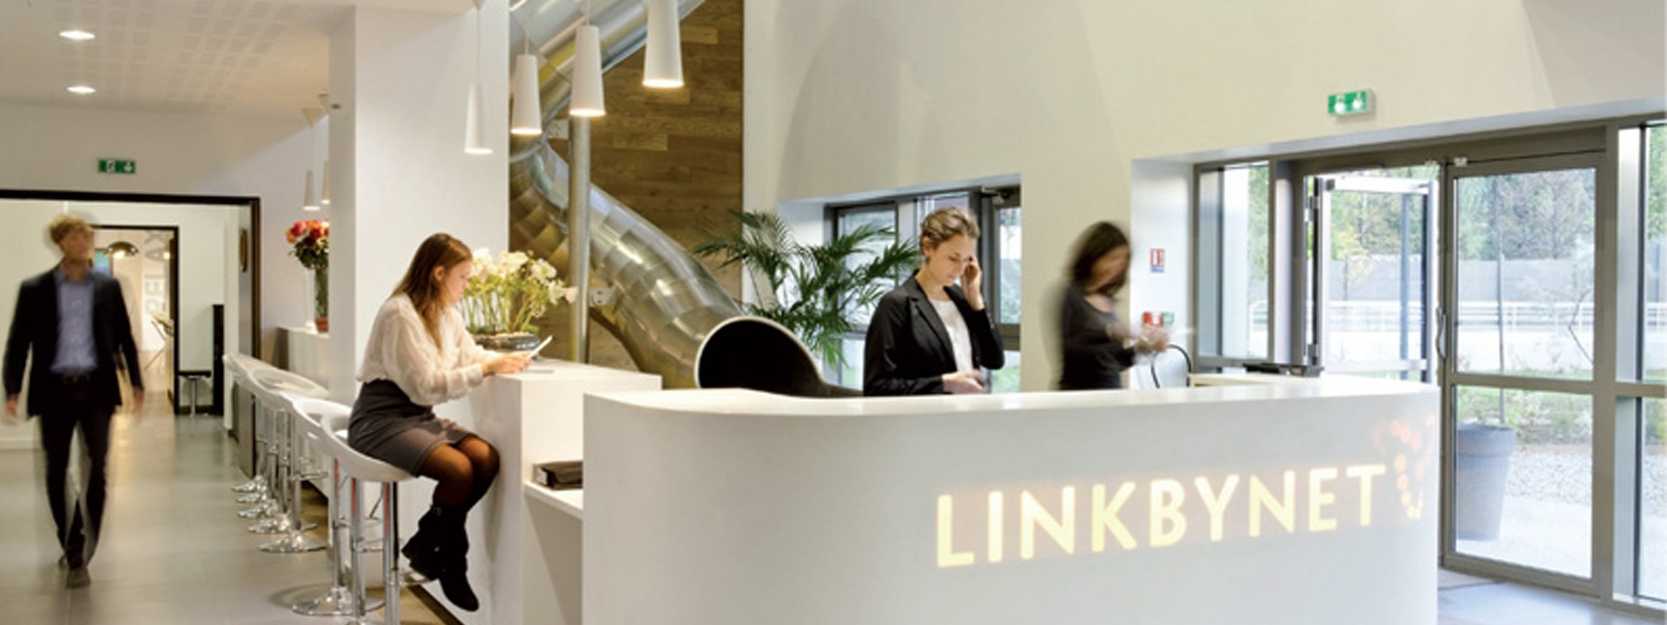 LINKBYNET, LE TRAVAIL EN MODE FUN 5